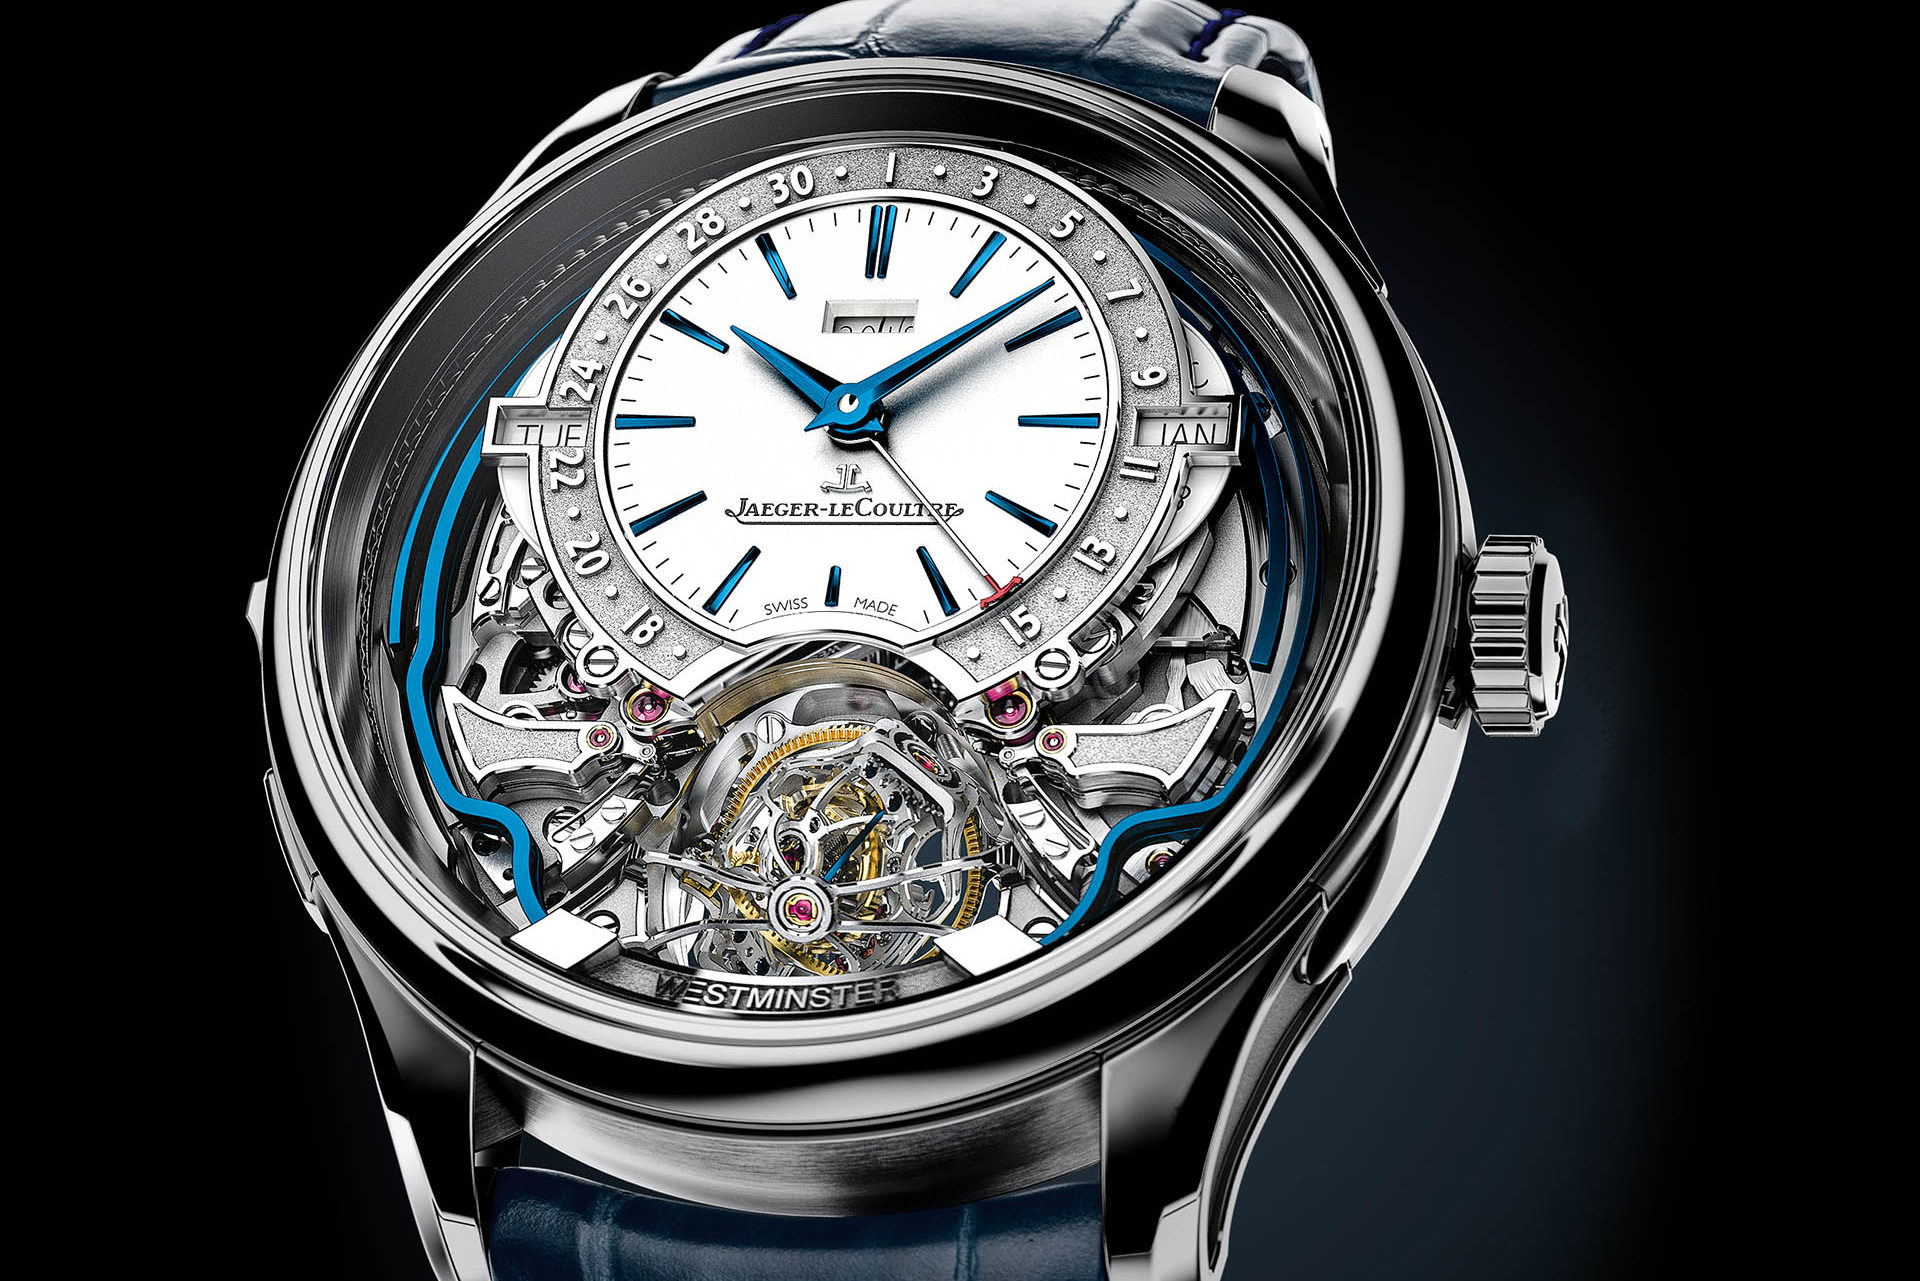 JAEGER-LECOULTRE GYROTOURBILLON WESTMINSTER PERPETUEL